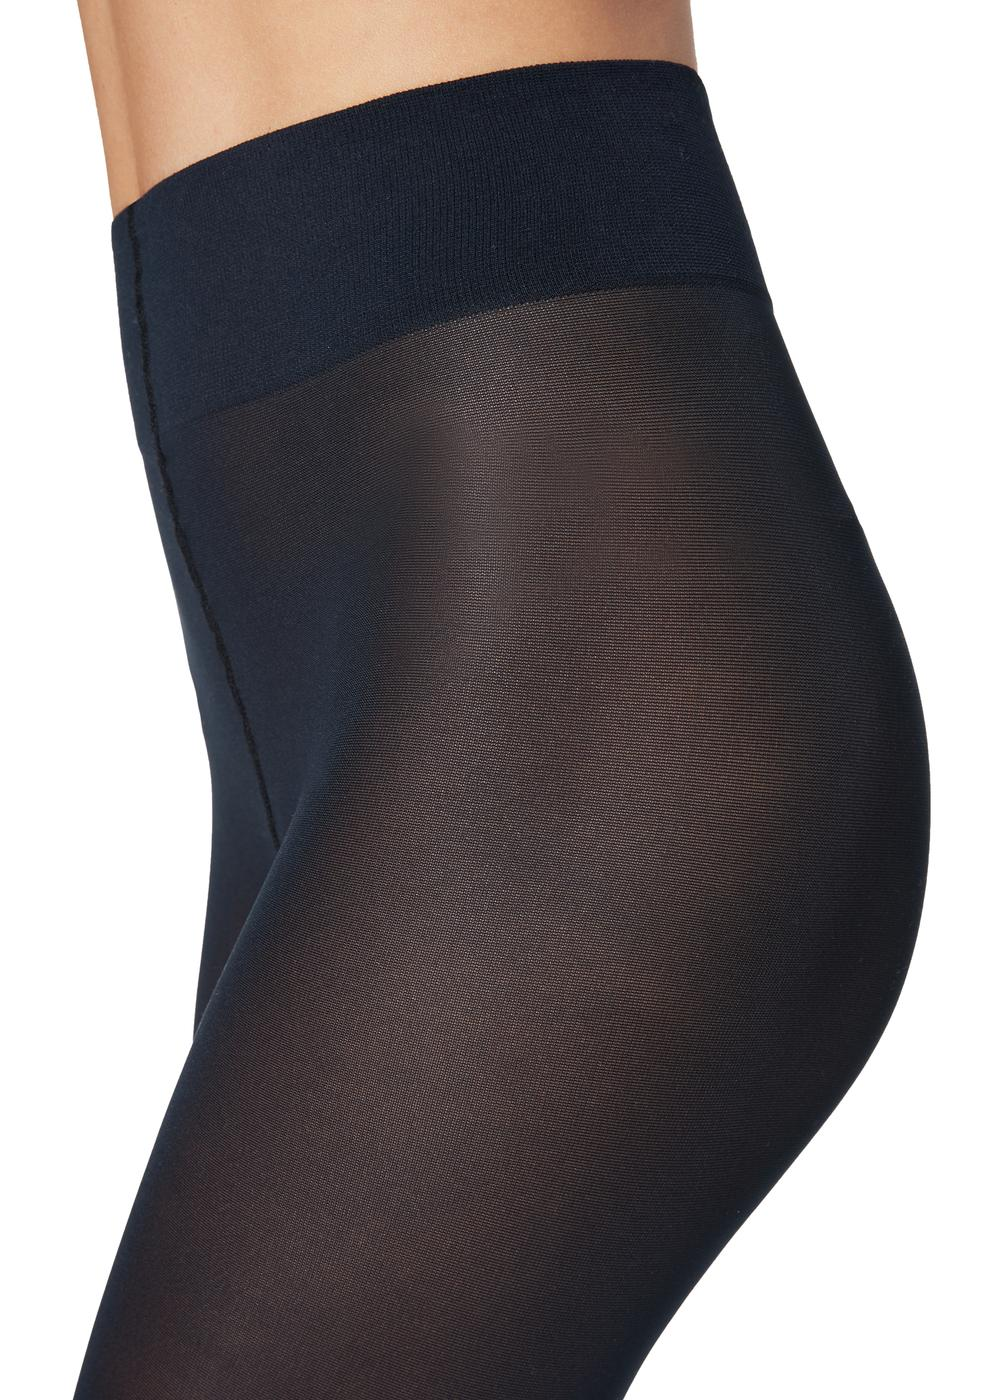 50 Denier Total Comfort Silky Touch Tights